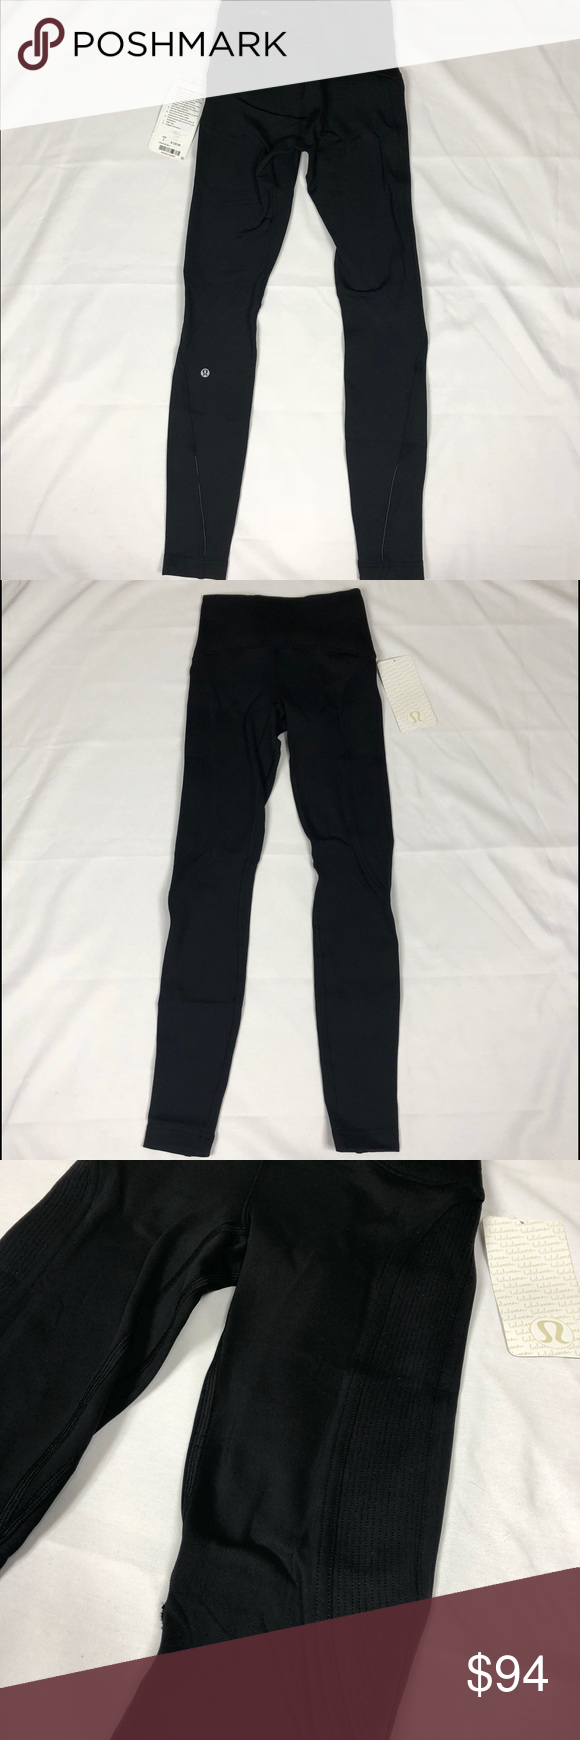 Lululemon fast as fleece tightsz linedblack nwt lululemon